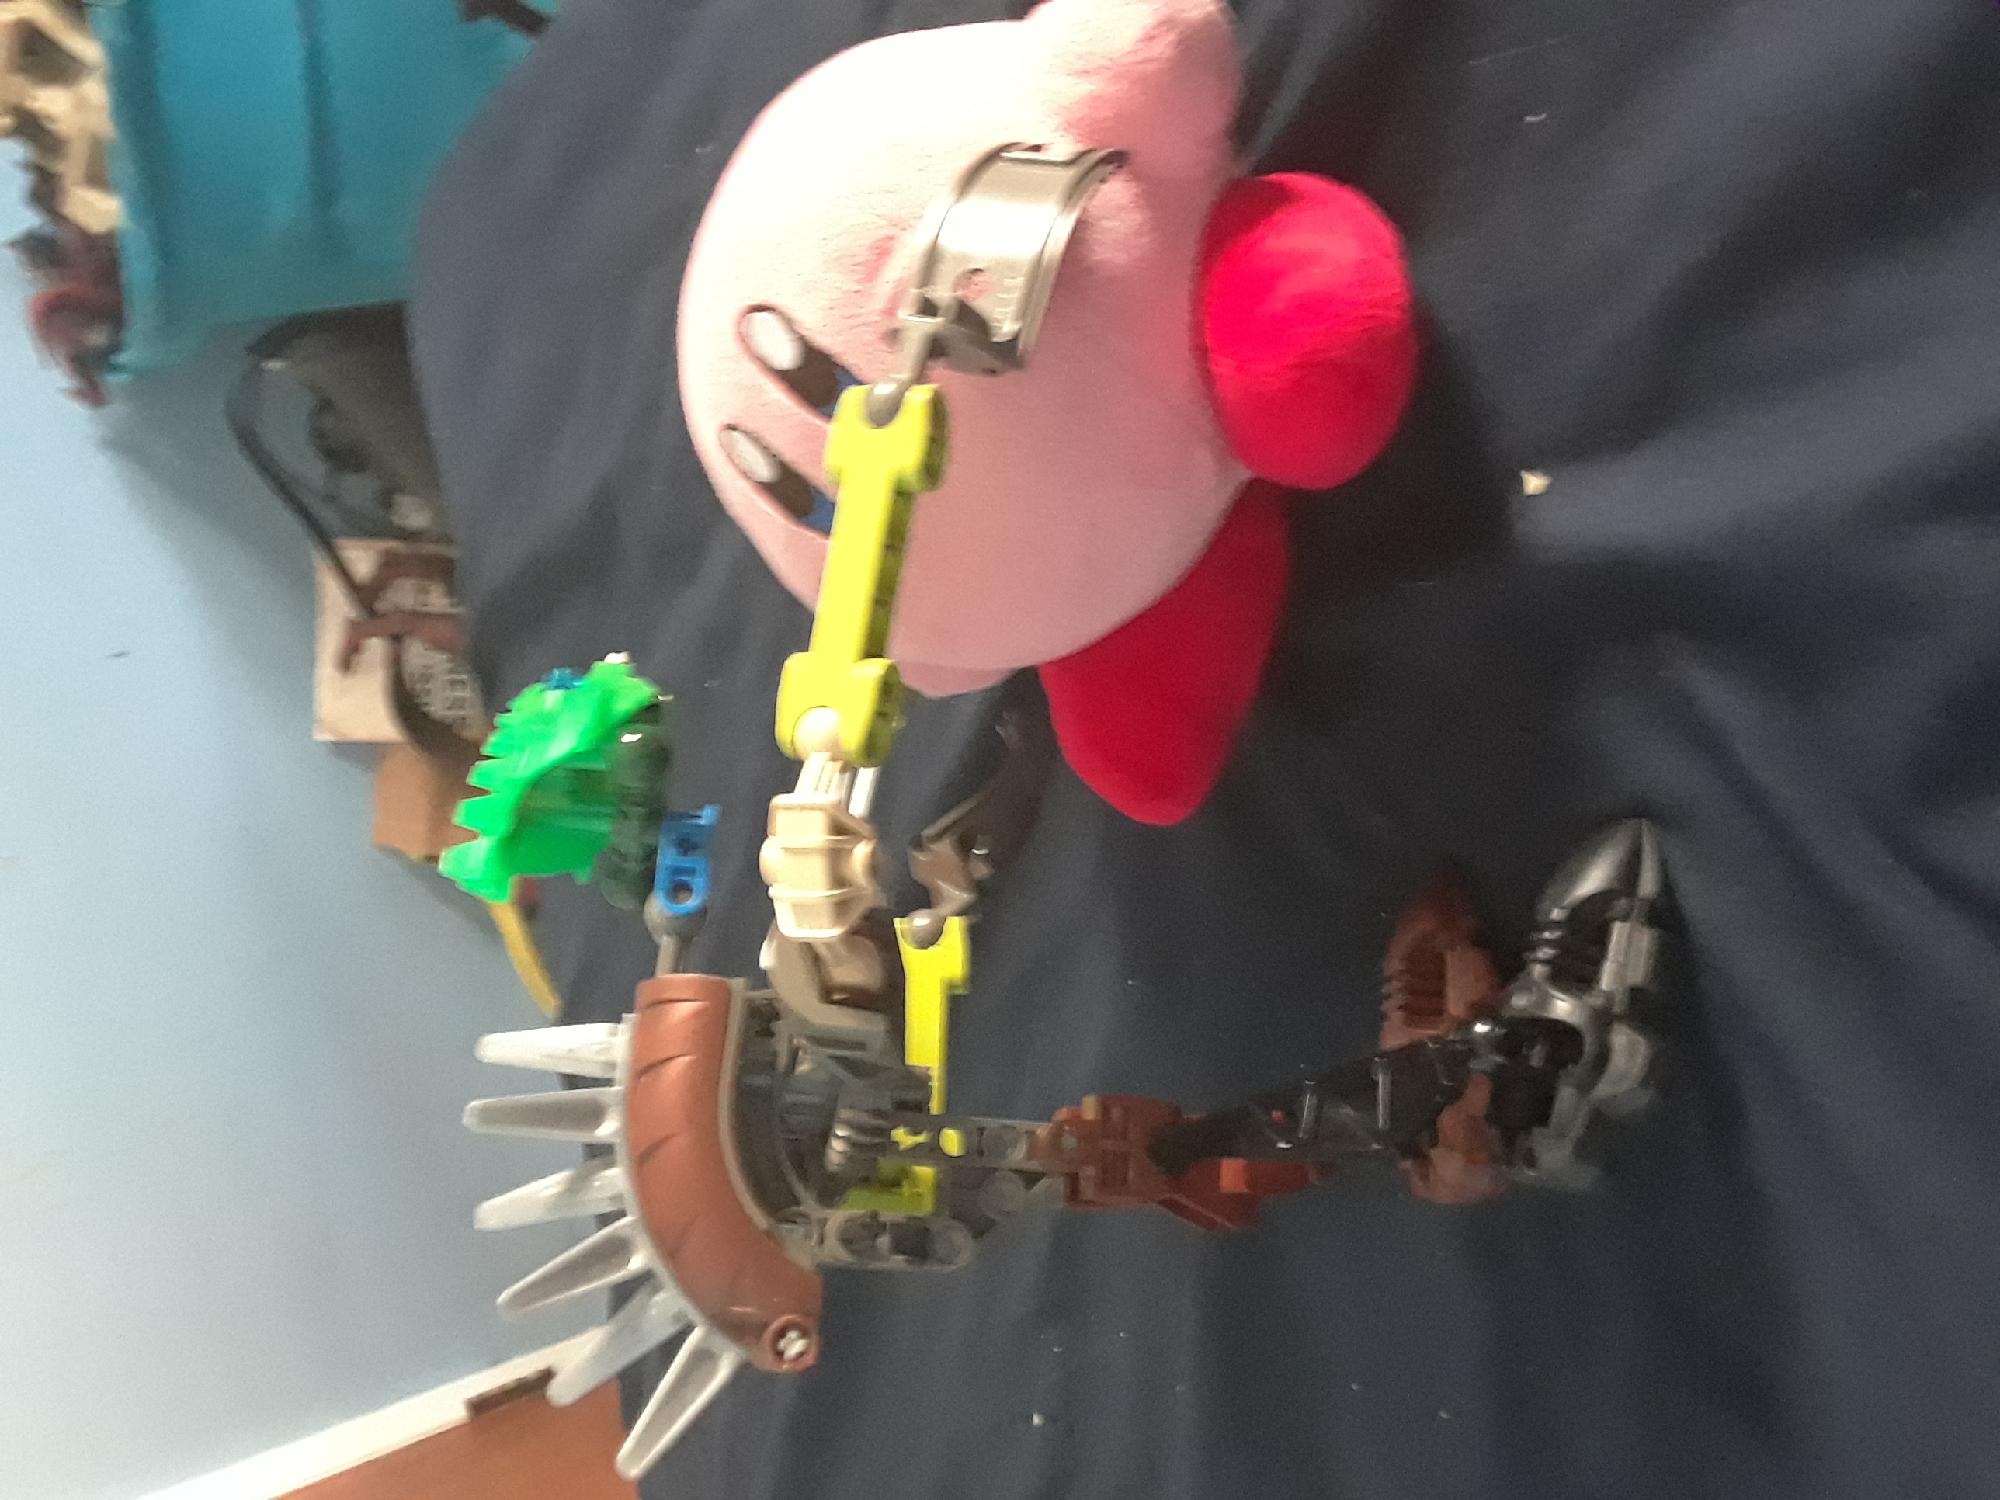 Just got a Bionicle so...